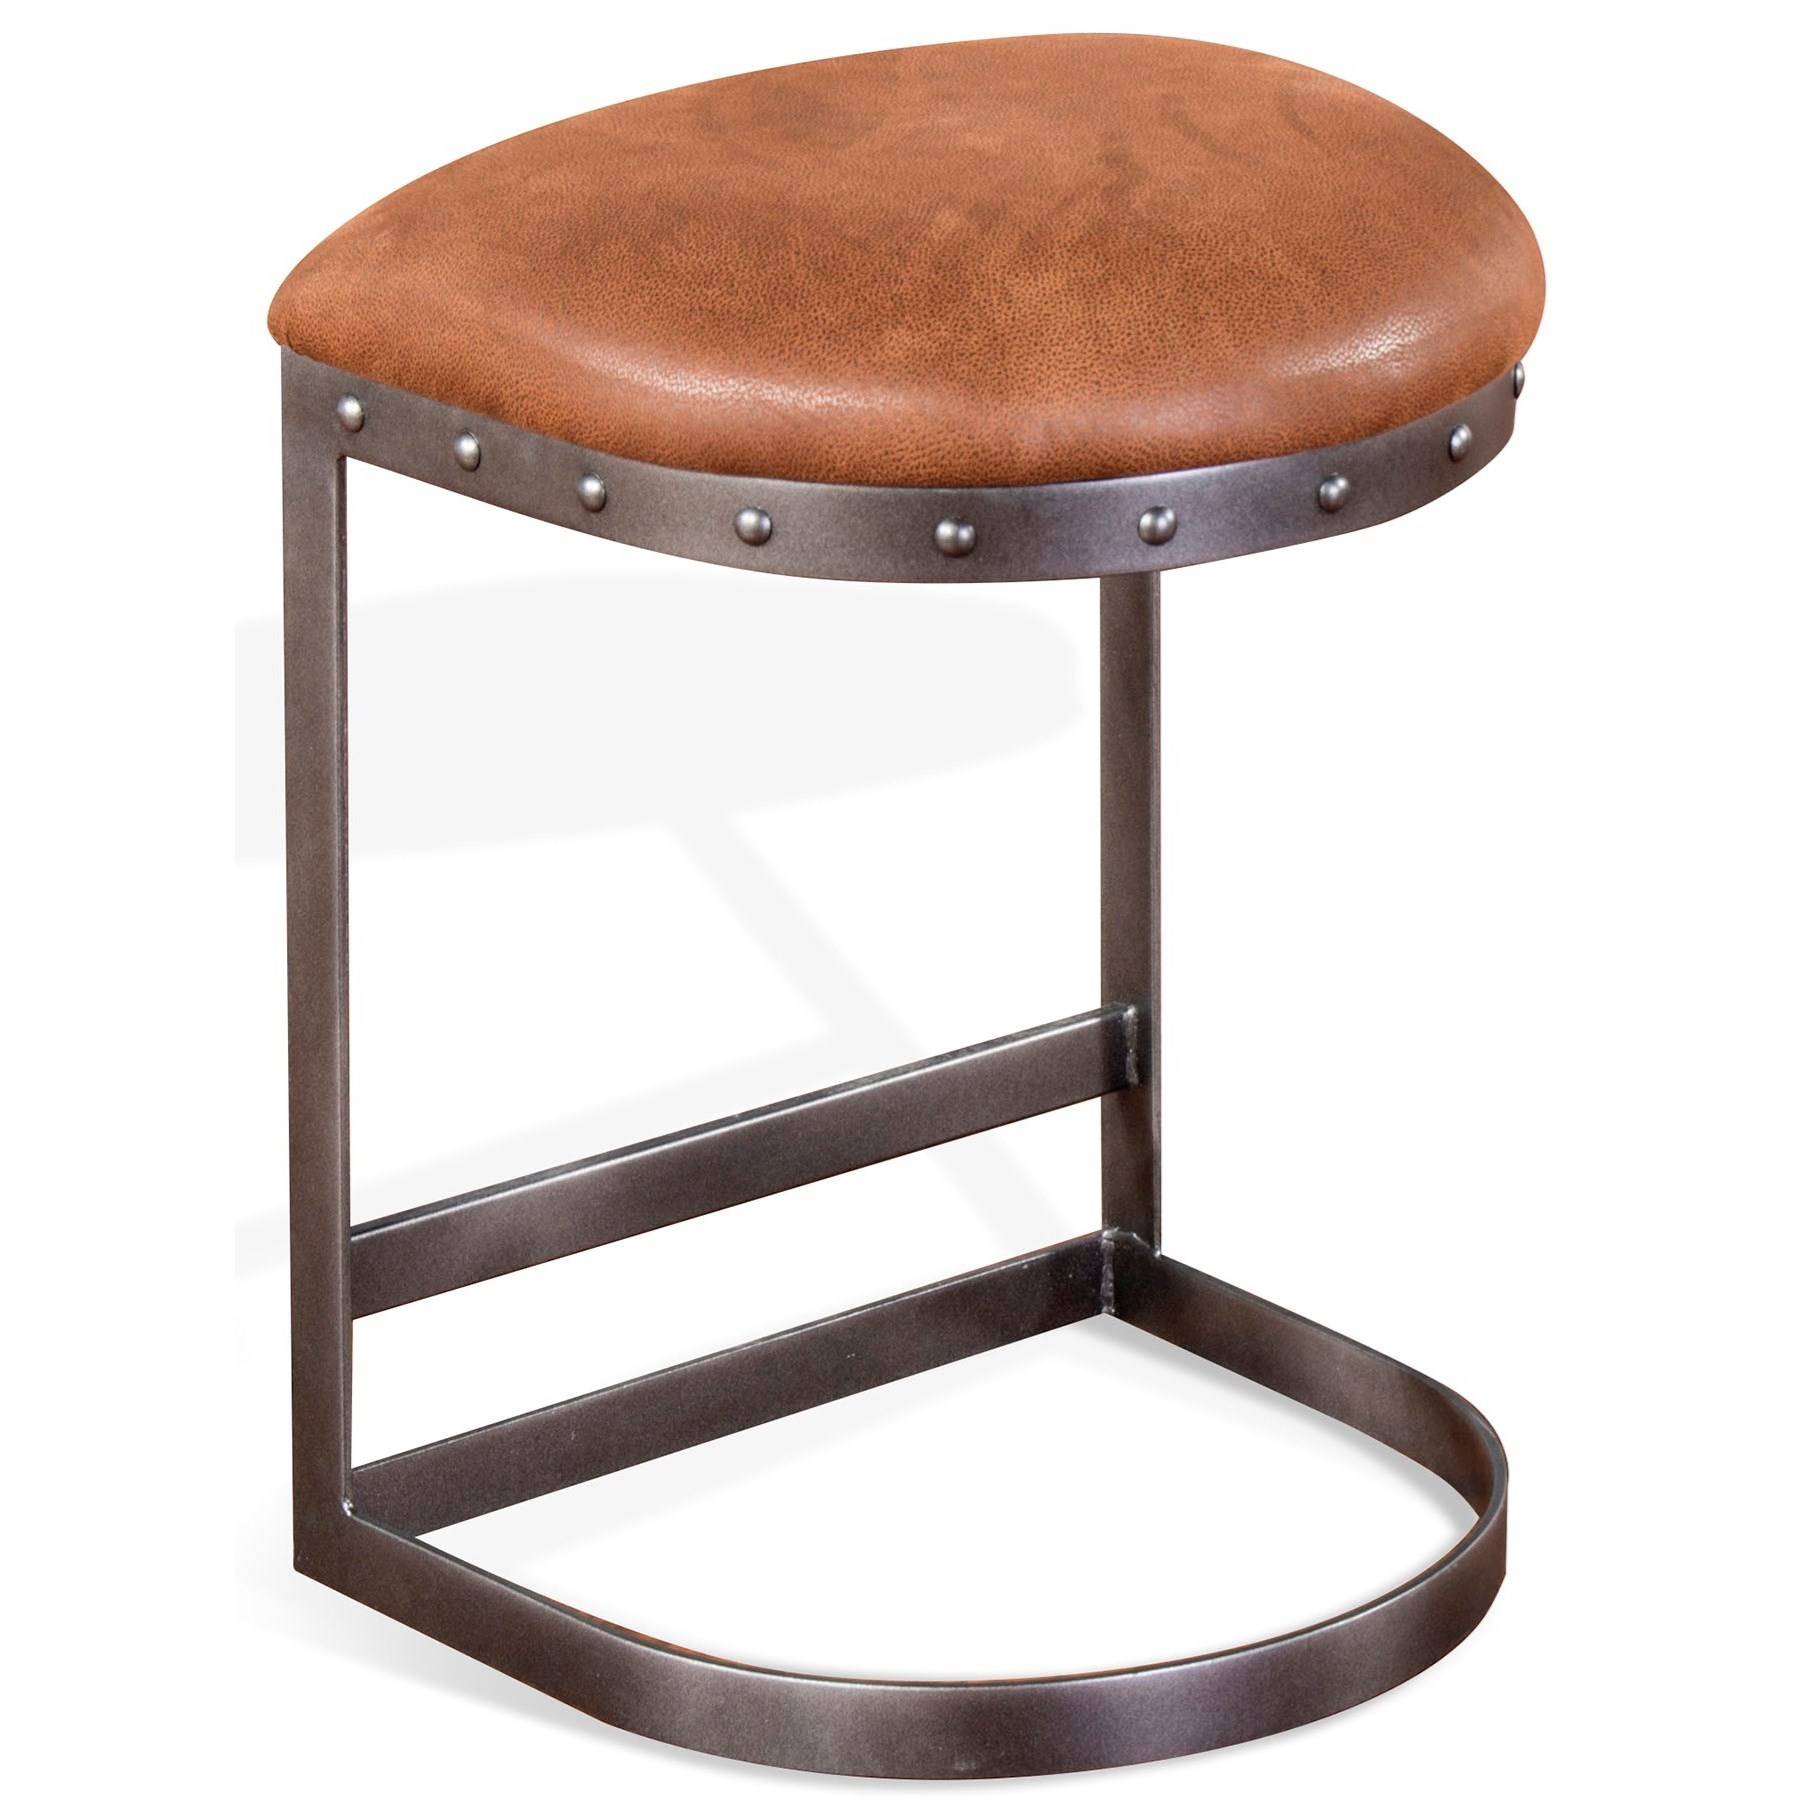 Sunny Designs Metro Flex Tahoe Bar Stool - Item Number: 1623B-24